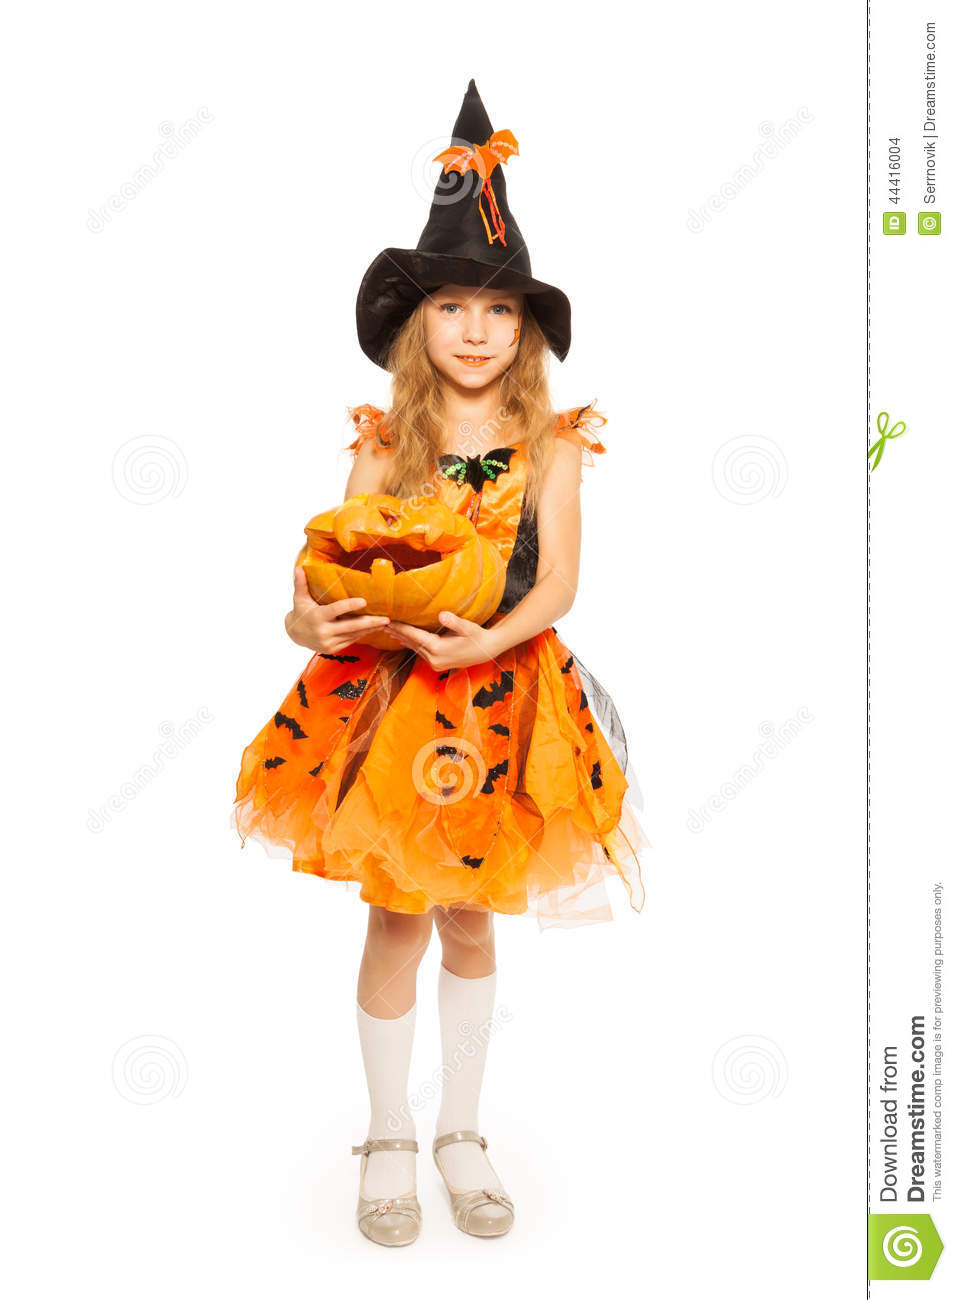 Girl In Witch Dress Hold Carved Halloween Pumpkin Stock Photo ...